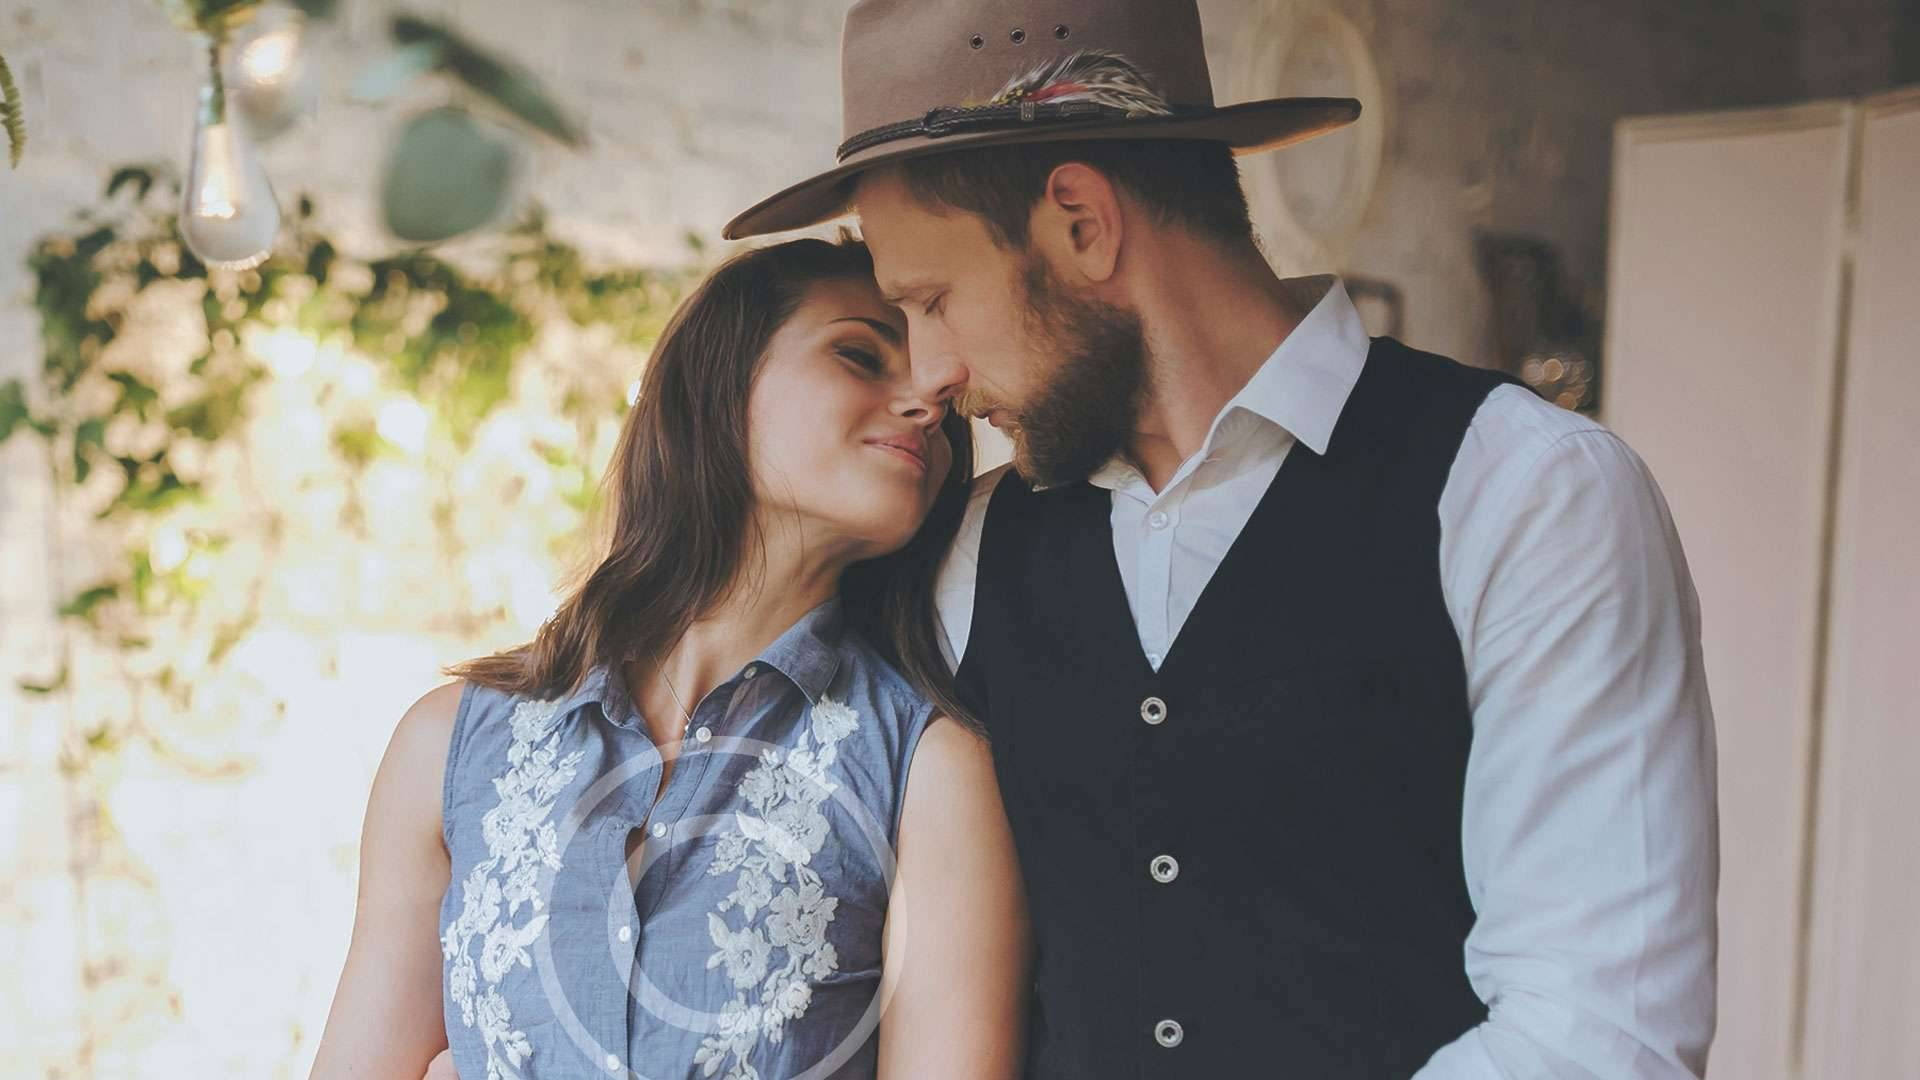 Plan Your Marriage, Not Just Your Wedding